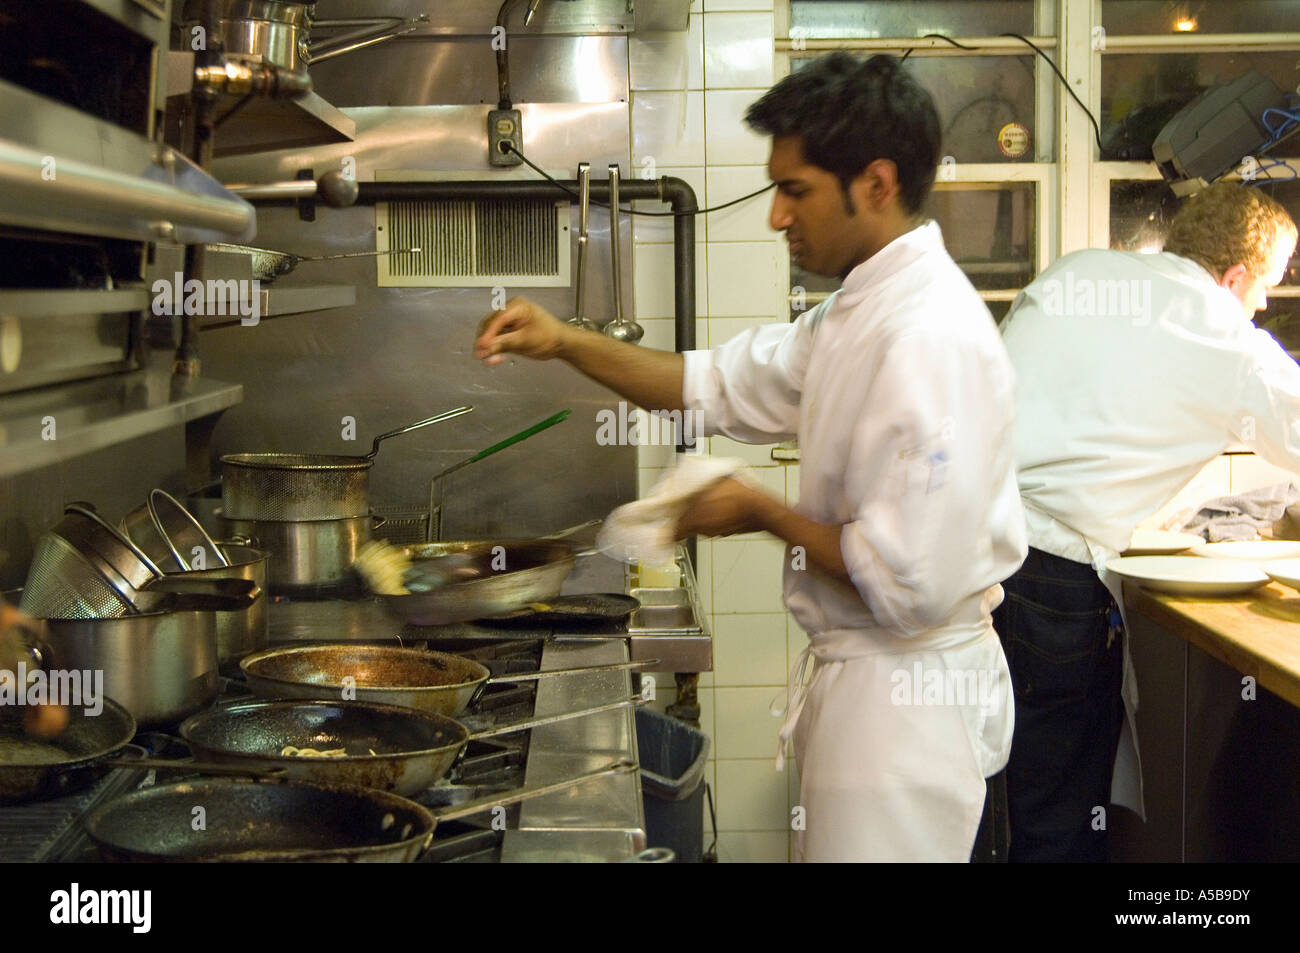 Busy Restaurant Kitchen Team Of Restaurant Kitchen Staff Busy At Work Stock Photo Royalty